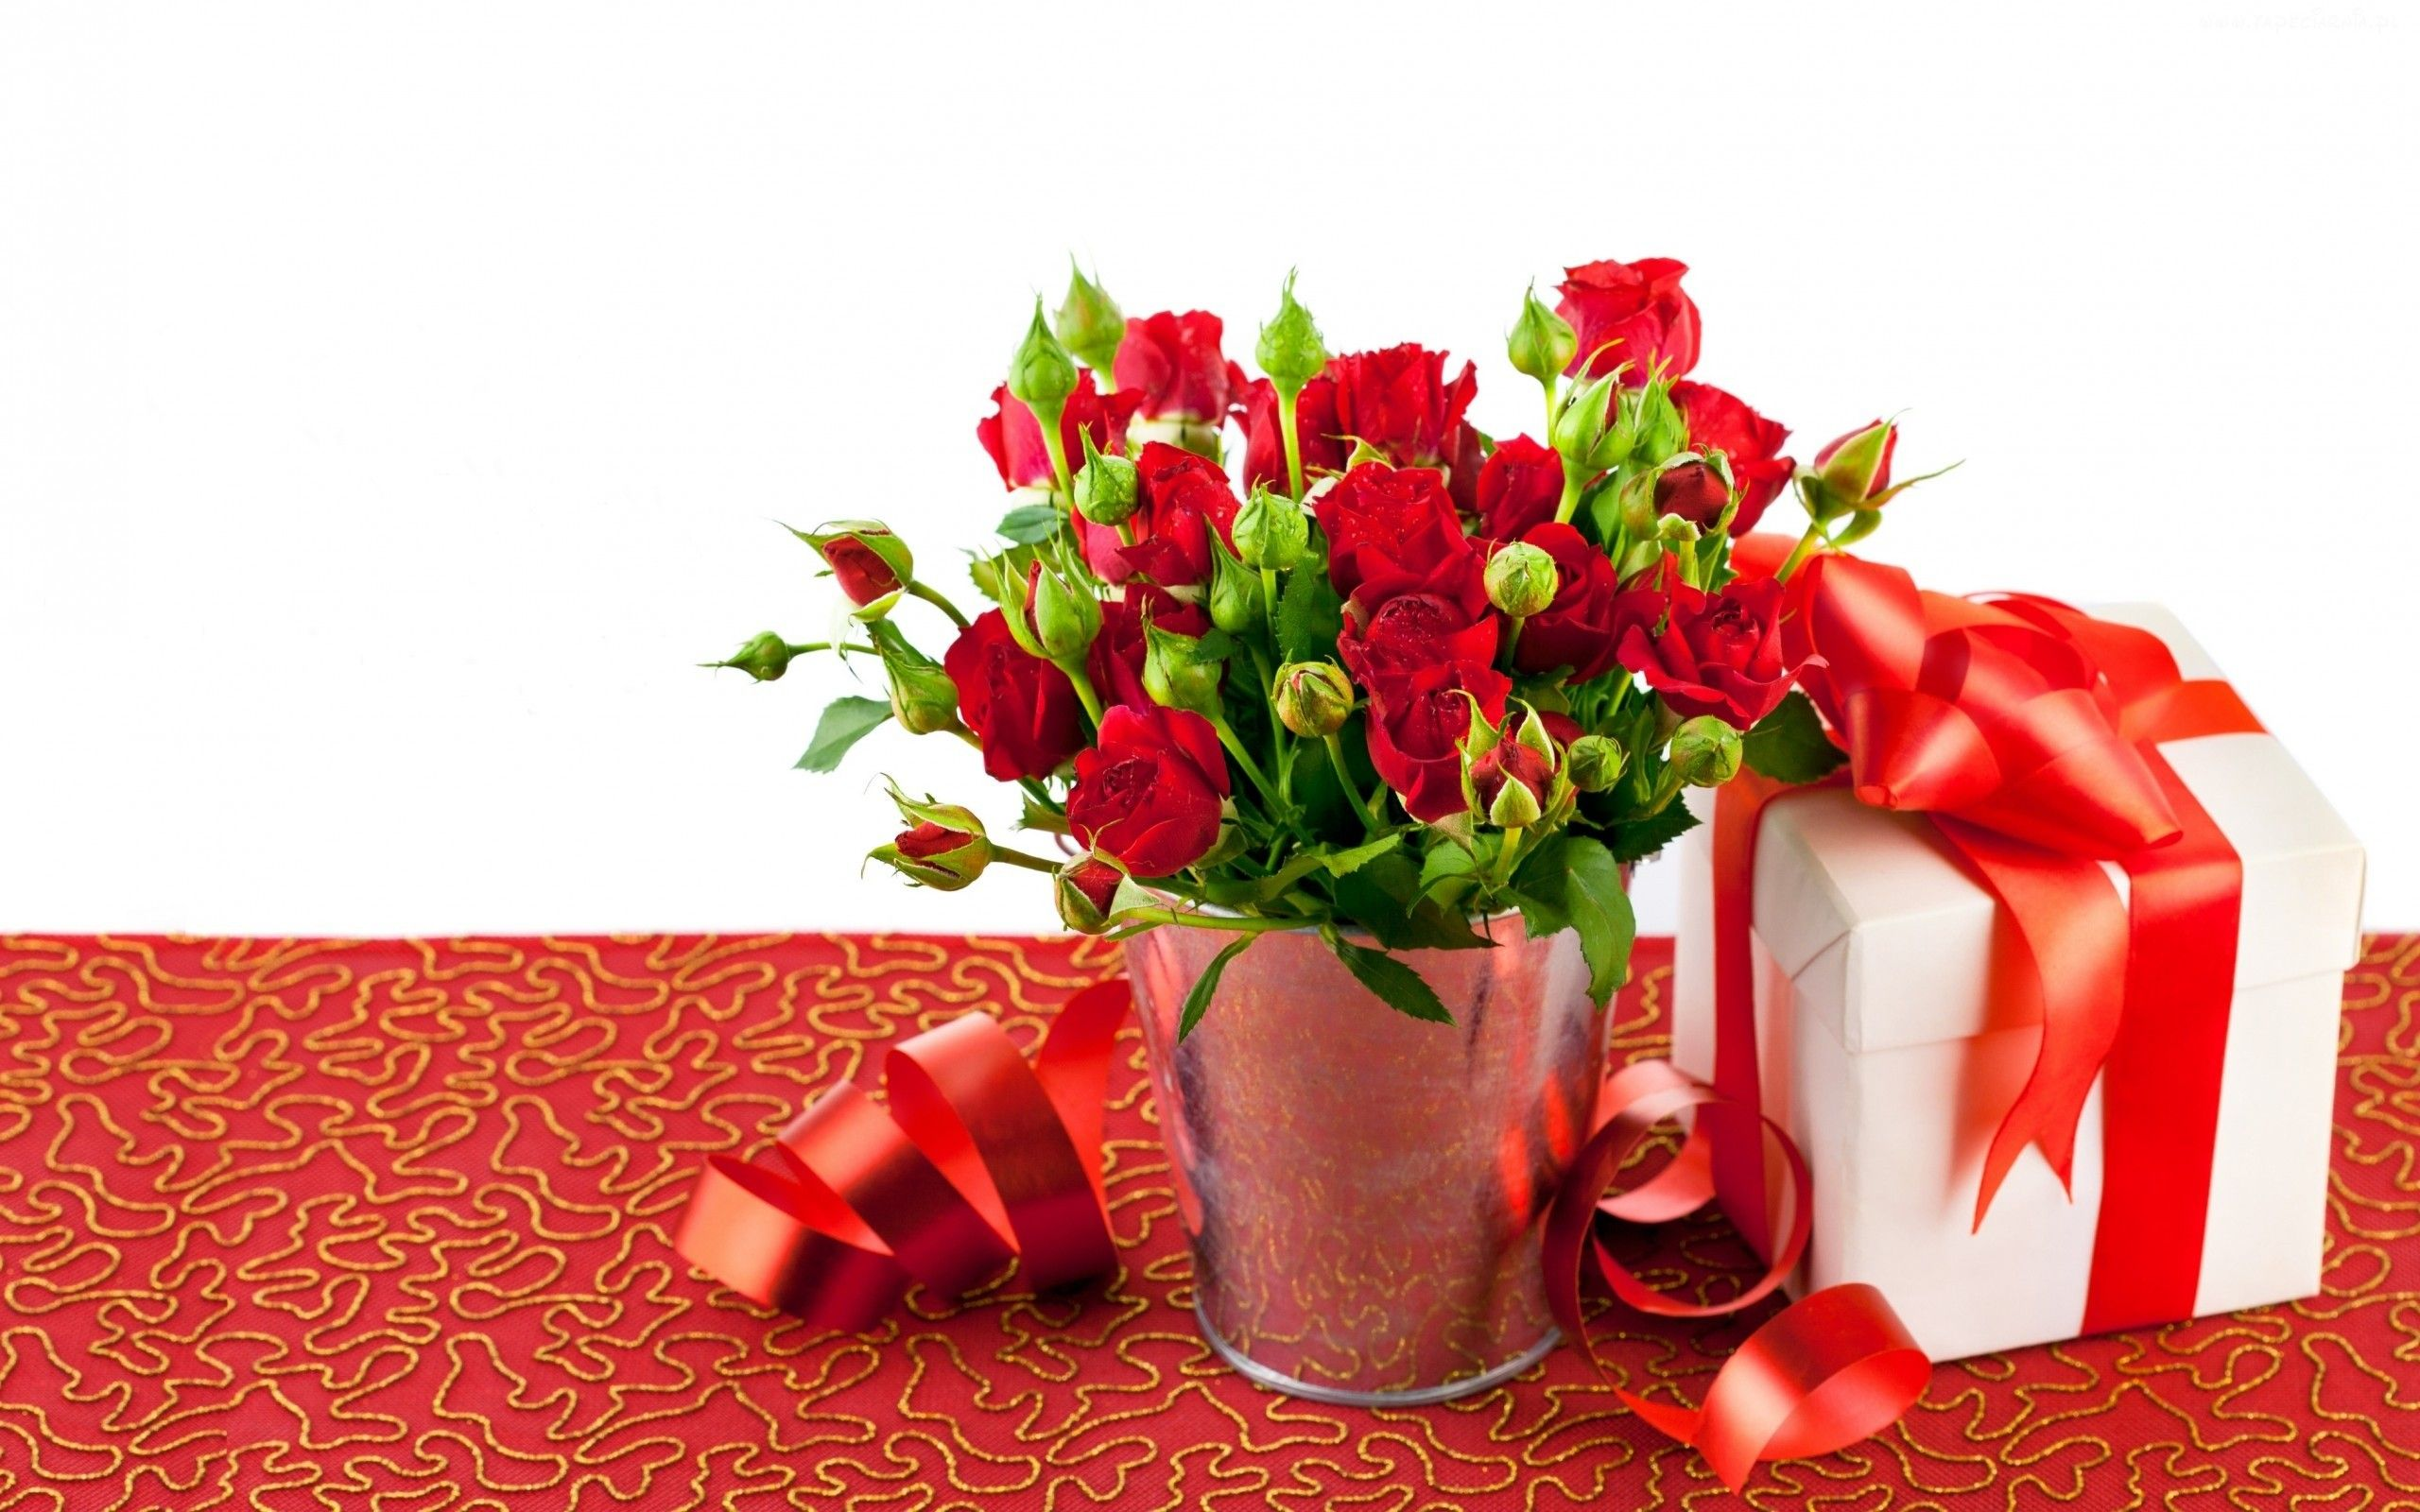 Red rose flower arrangements and a gift box hd wallpaper sushma red rose flower arrangements and a gift box hd wallpaper negle Gallery